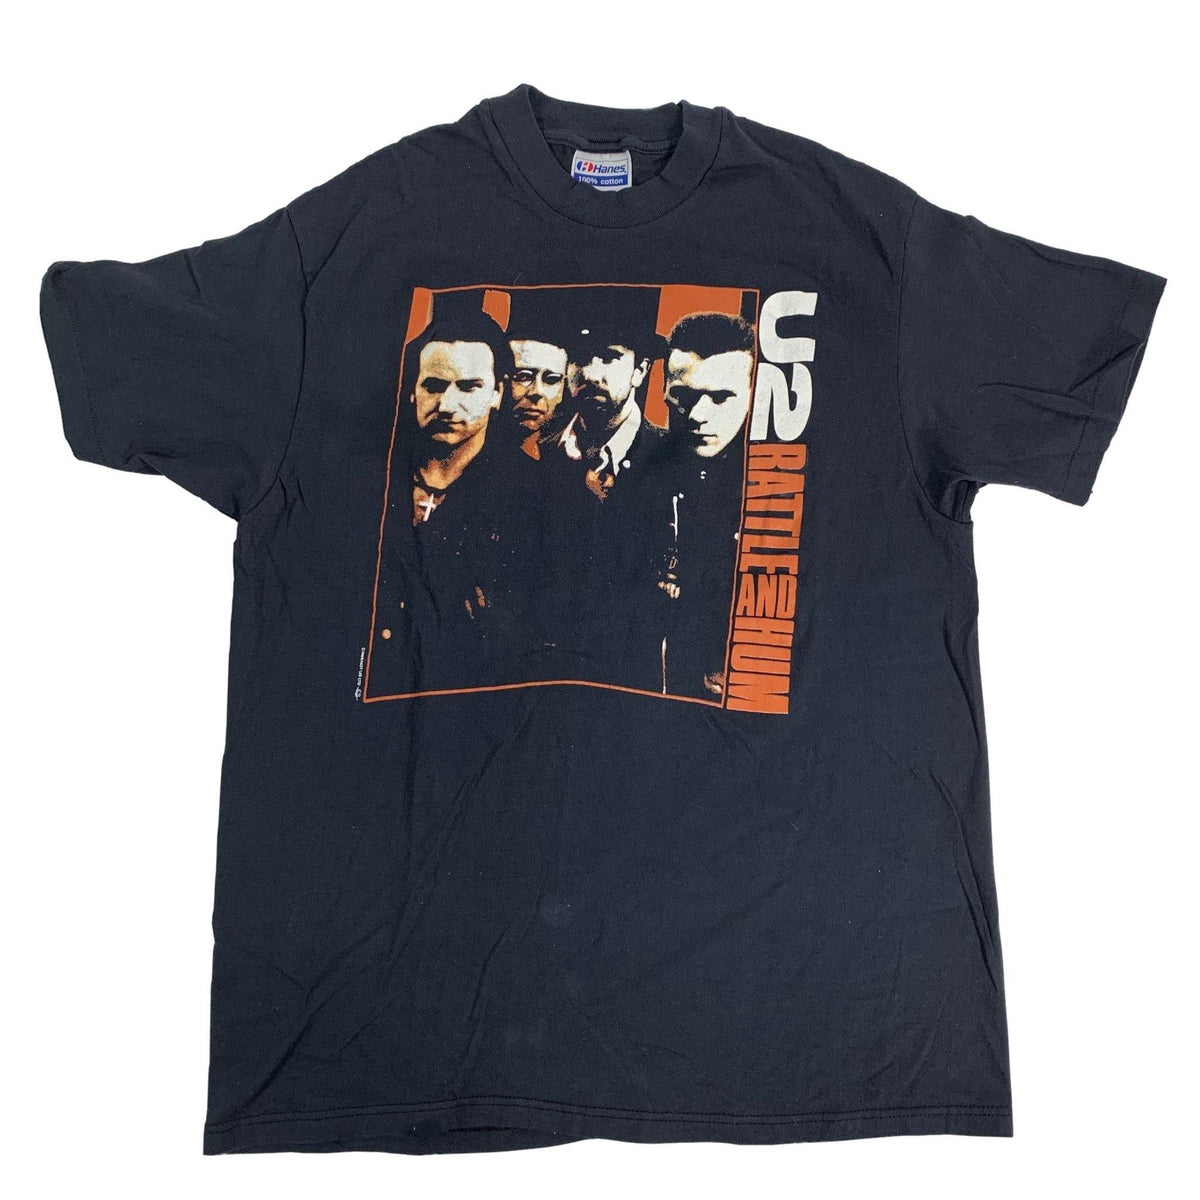 "Vintage U2 ""Rattle And Hum"" T-Shirt"